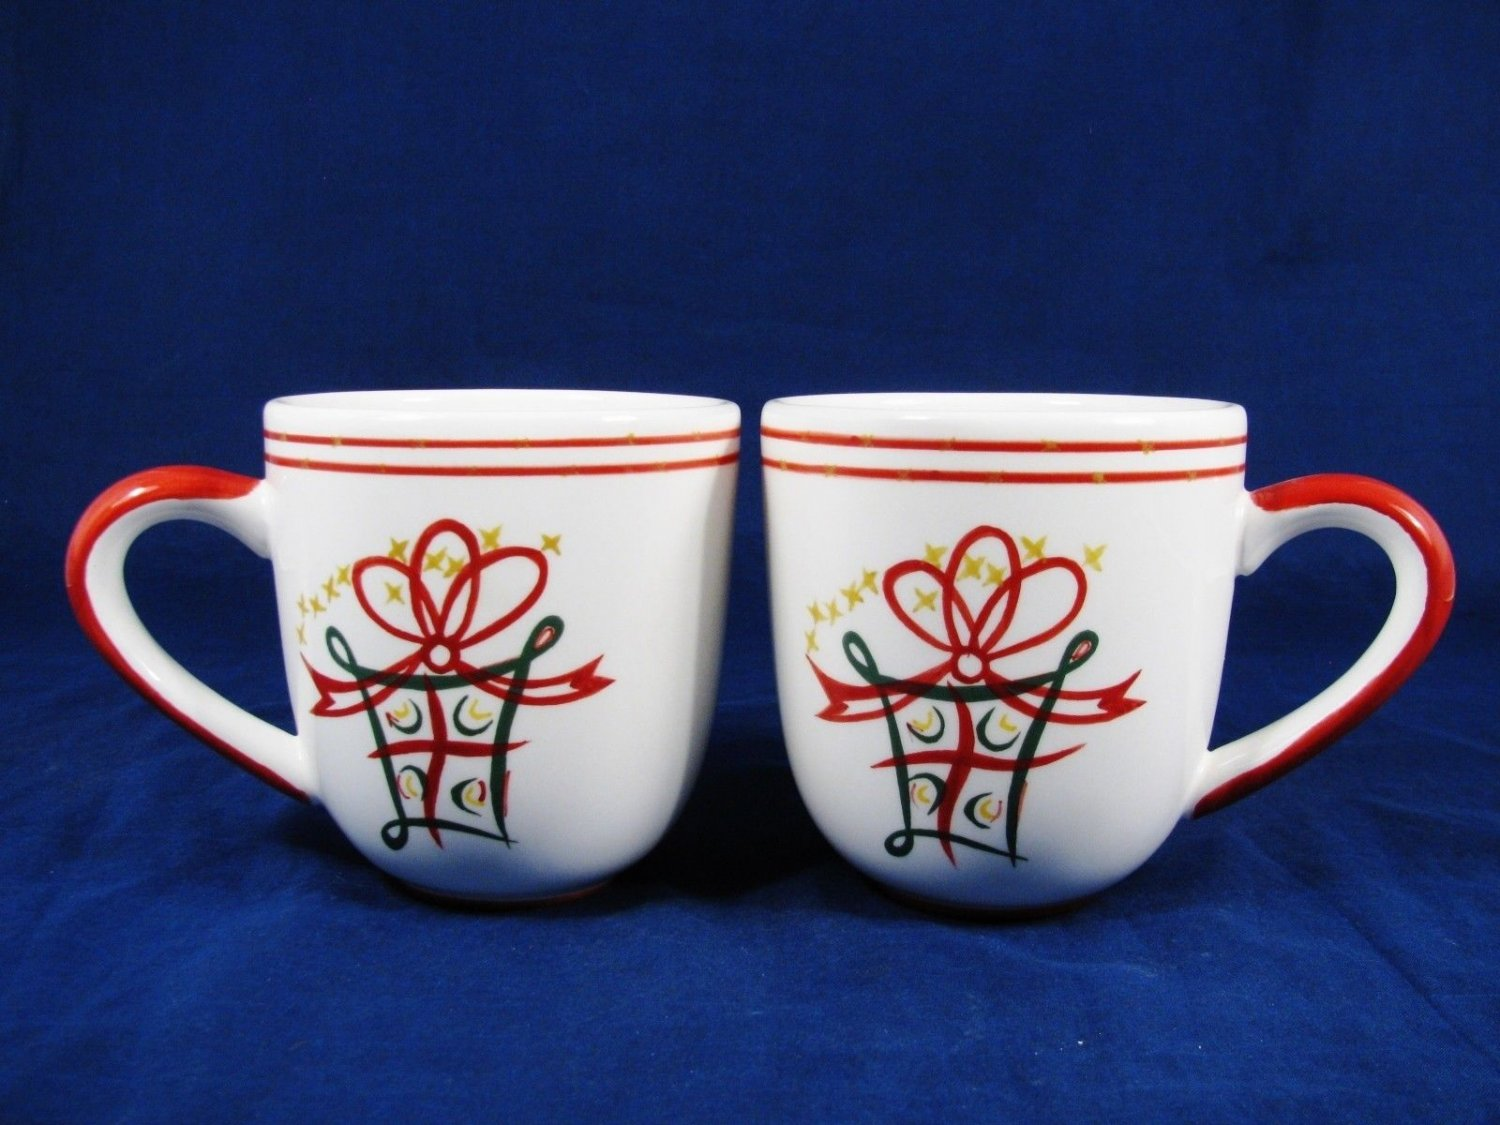 PIER 1 IMPORTS Set of 2 Coffee Mug Cup Holiday Gift Bow Stars Red Green 16 Oz Fast Free Ship